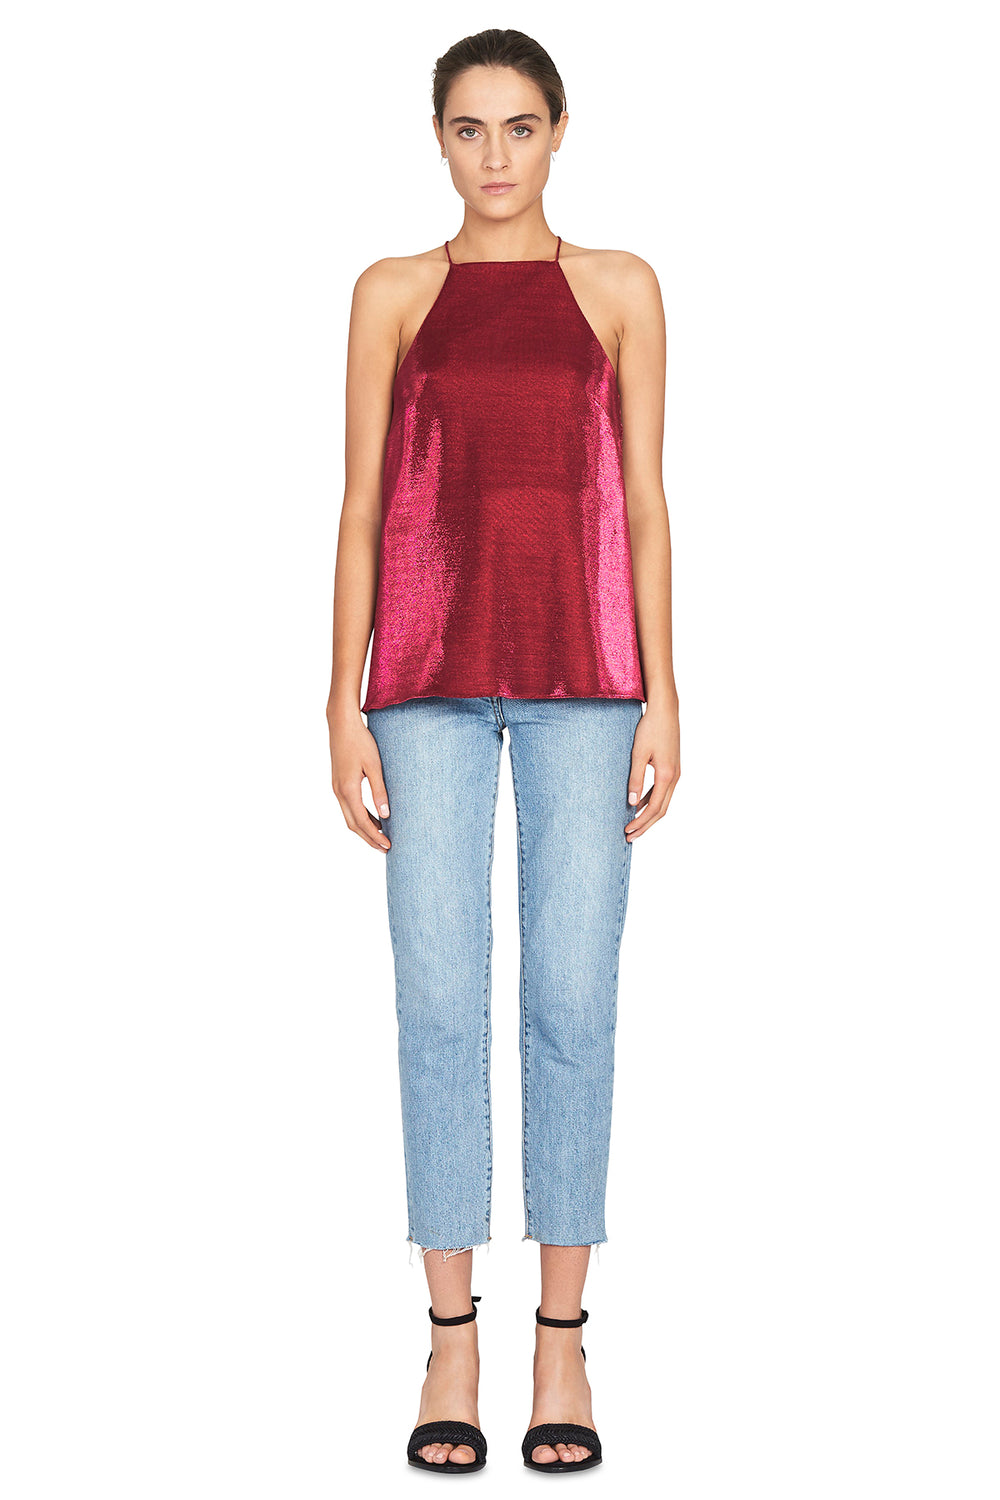 The Opasidy Top in Raspberry by CAMILLA AND MARC